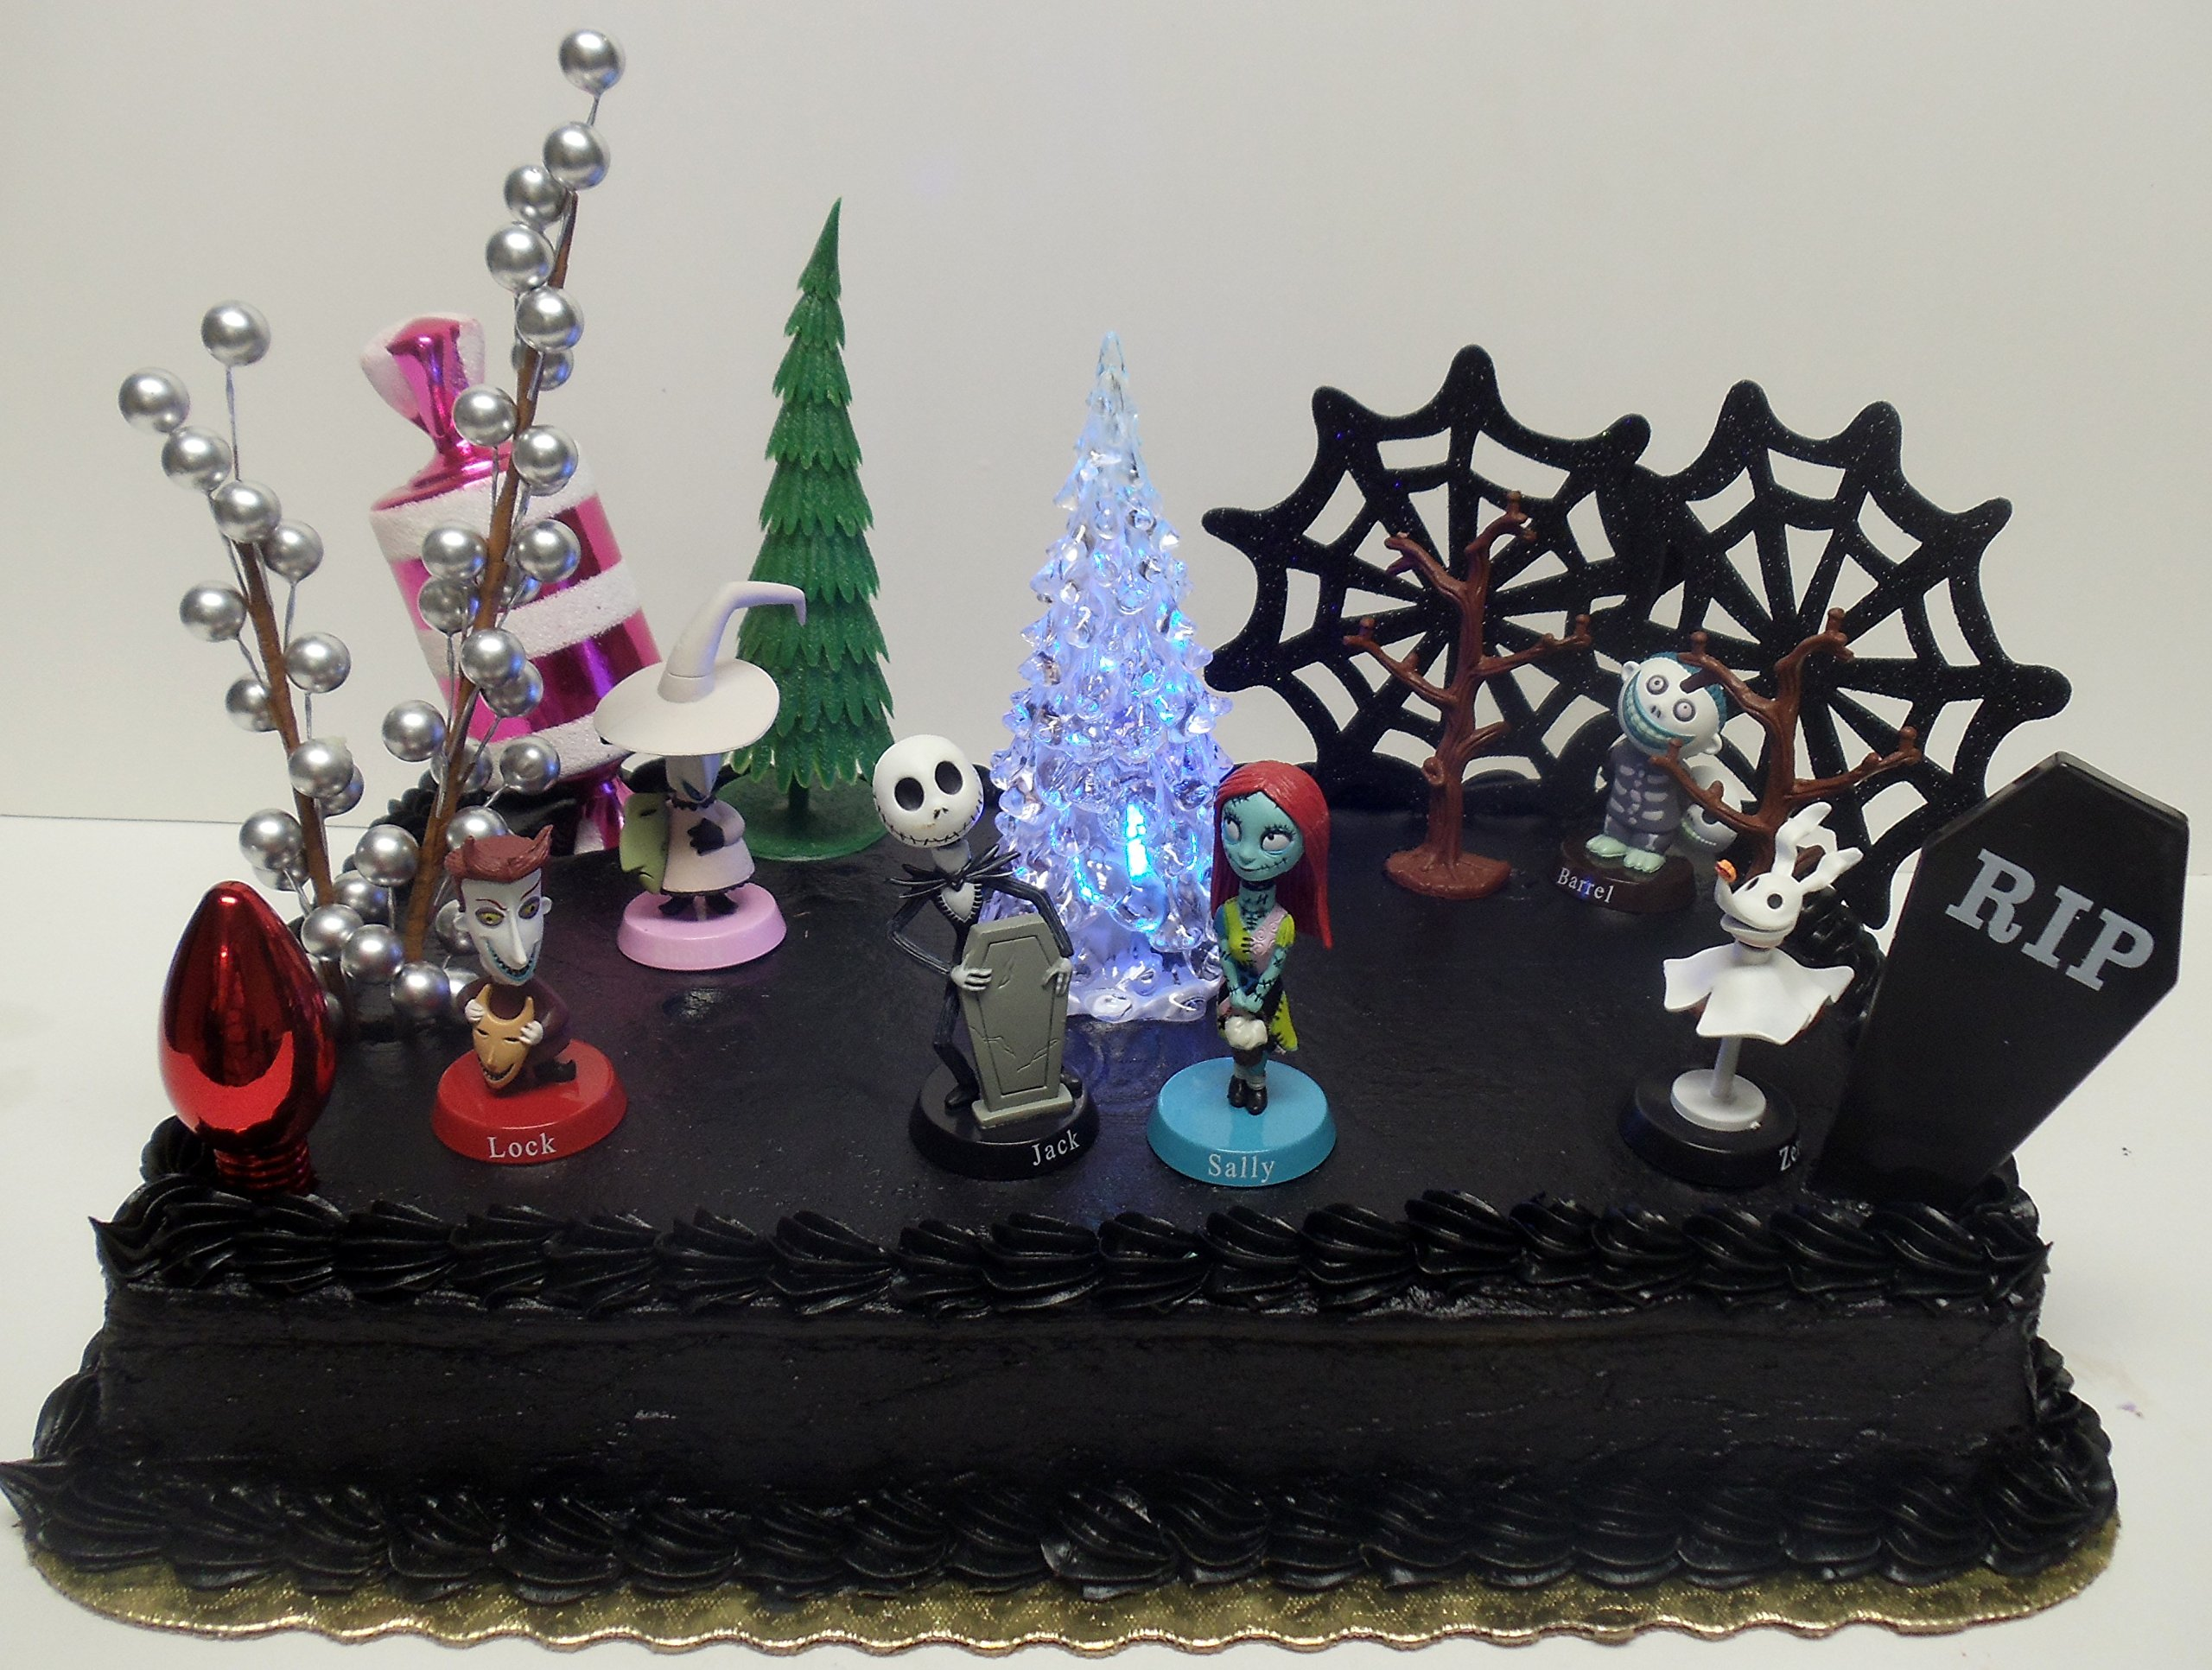 Nightmare before christmas 17 piece birthday cake topper set featuring